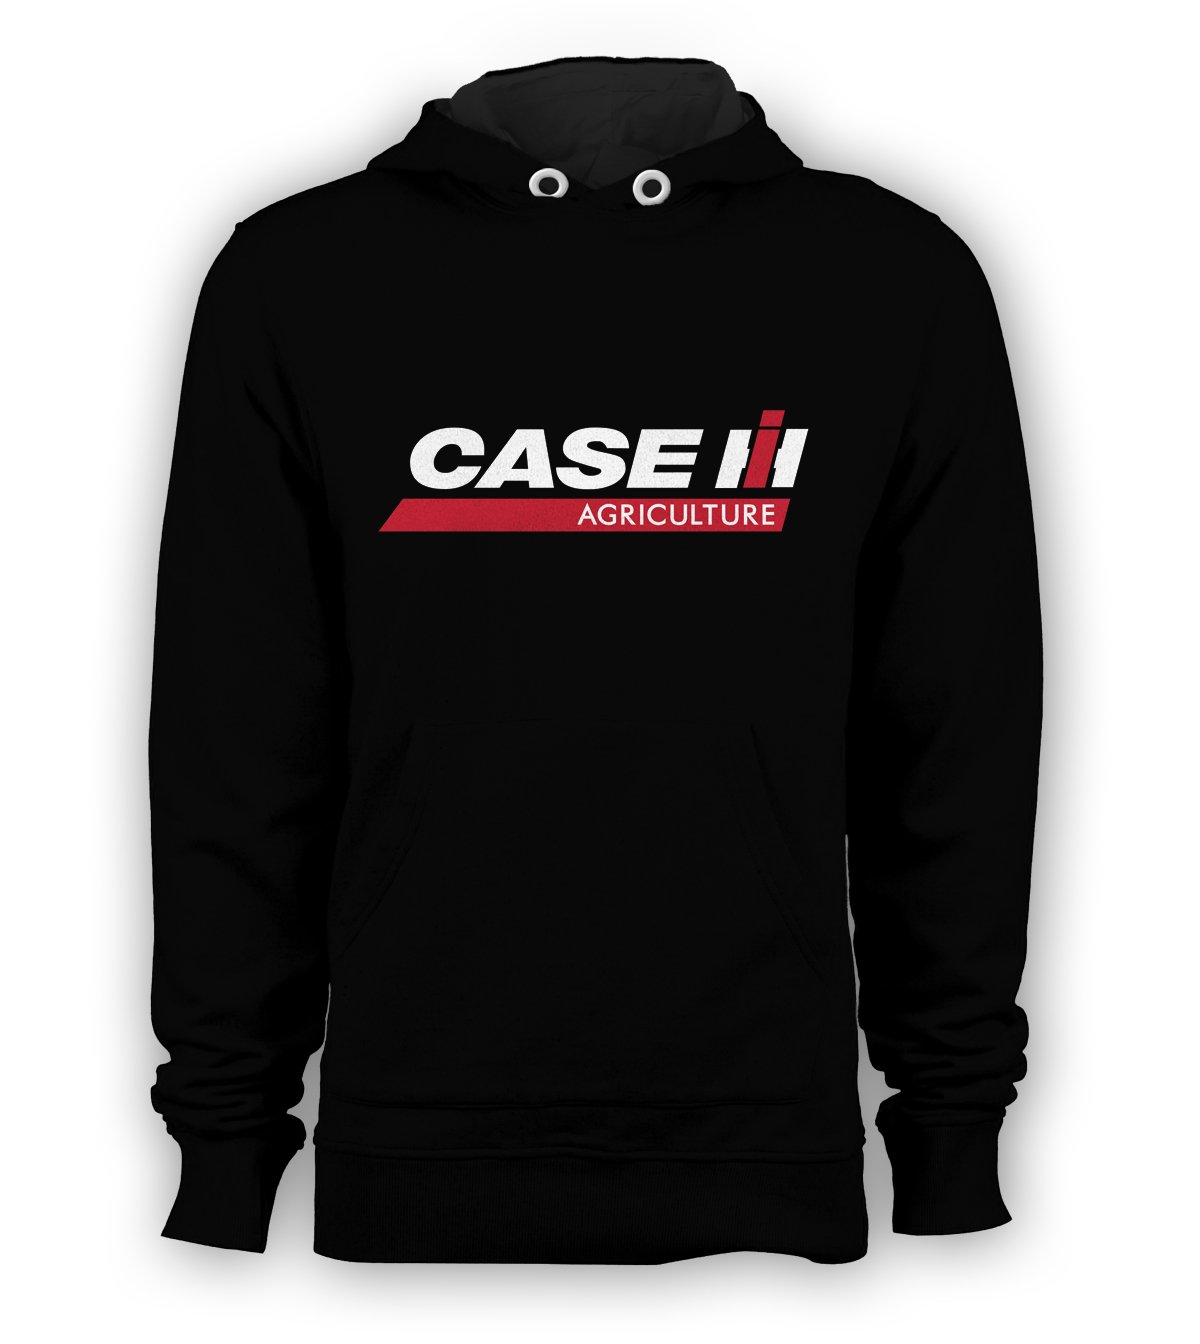 Case IH Agriculture Pullover Hoodie Men Sweatshirts Size S to 3XL New Black